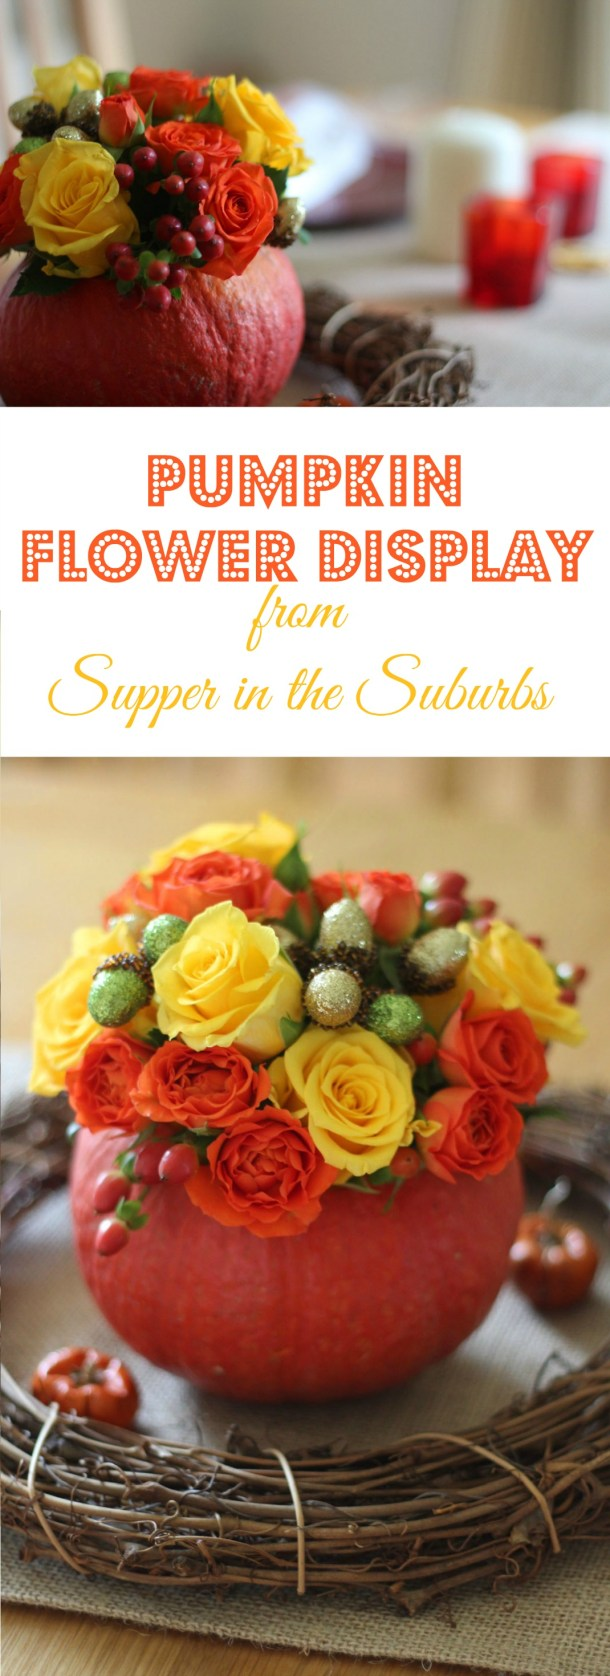 Pumpkin Flower Display Pin from Supper in the Suburbs